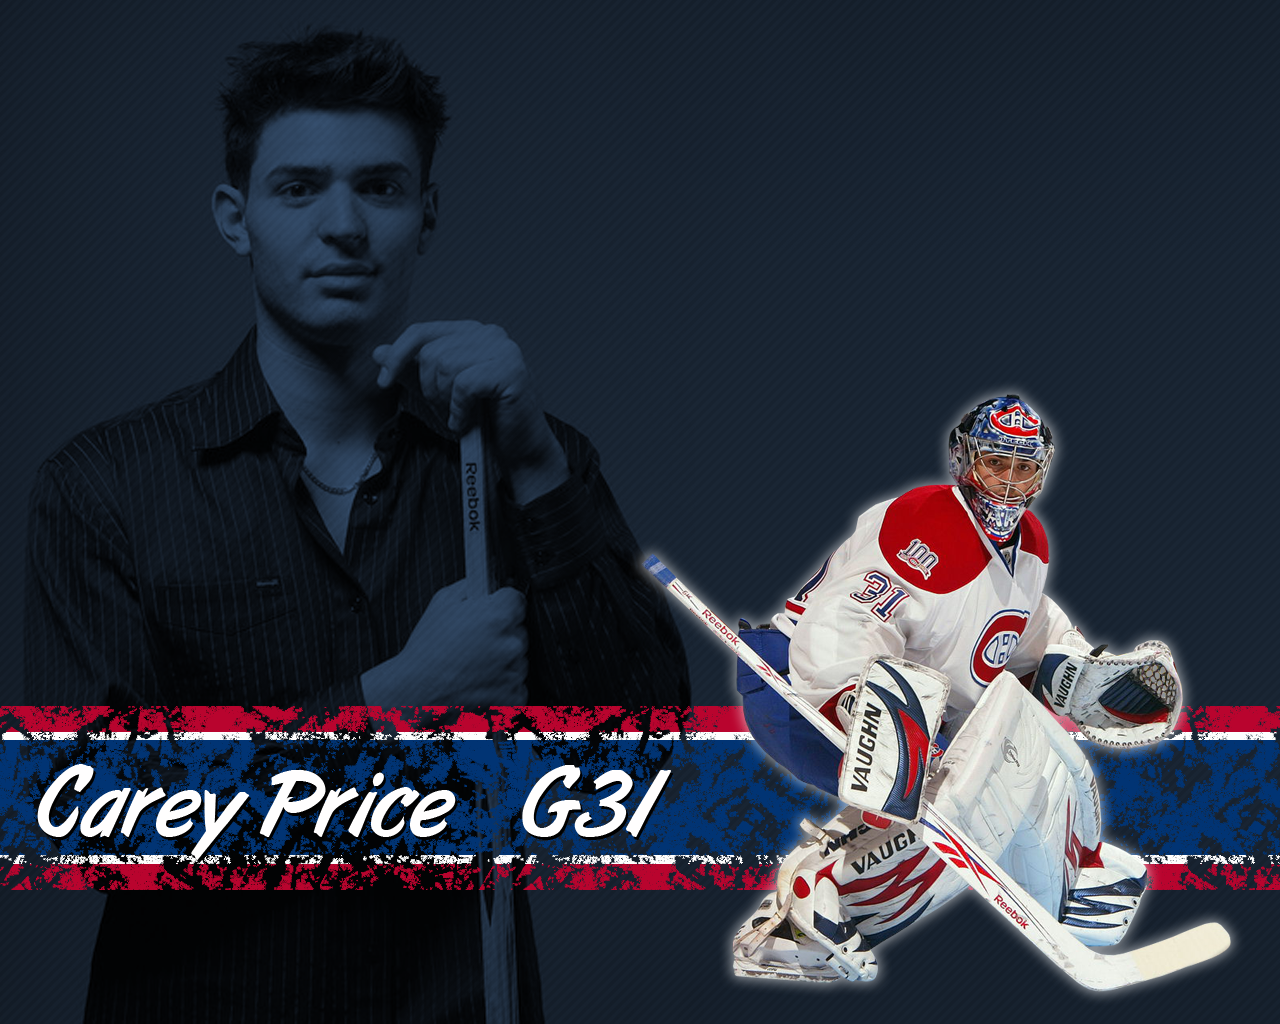 Carey Price by Bruins4Life 1280x1024